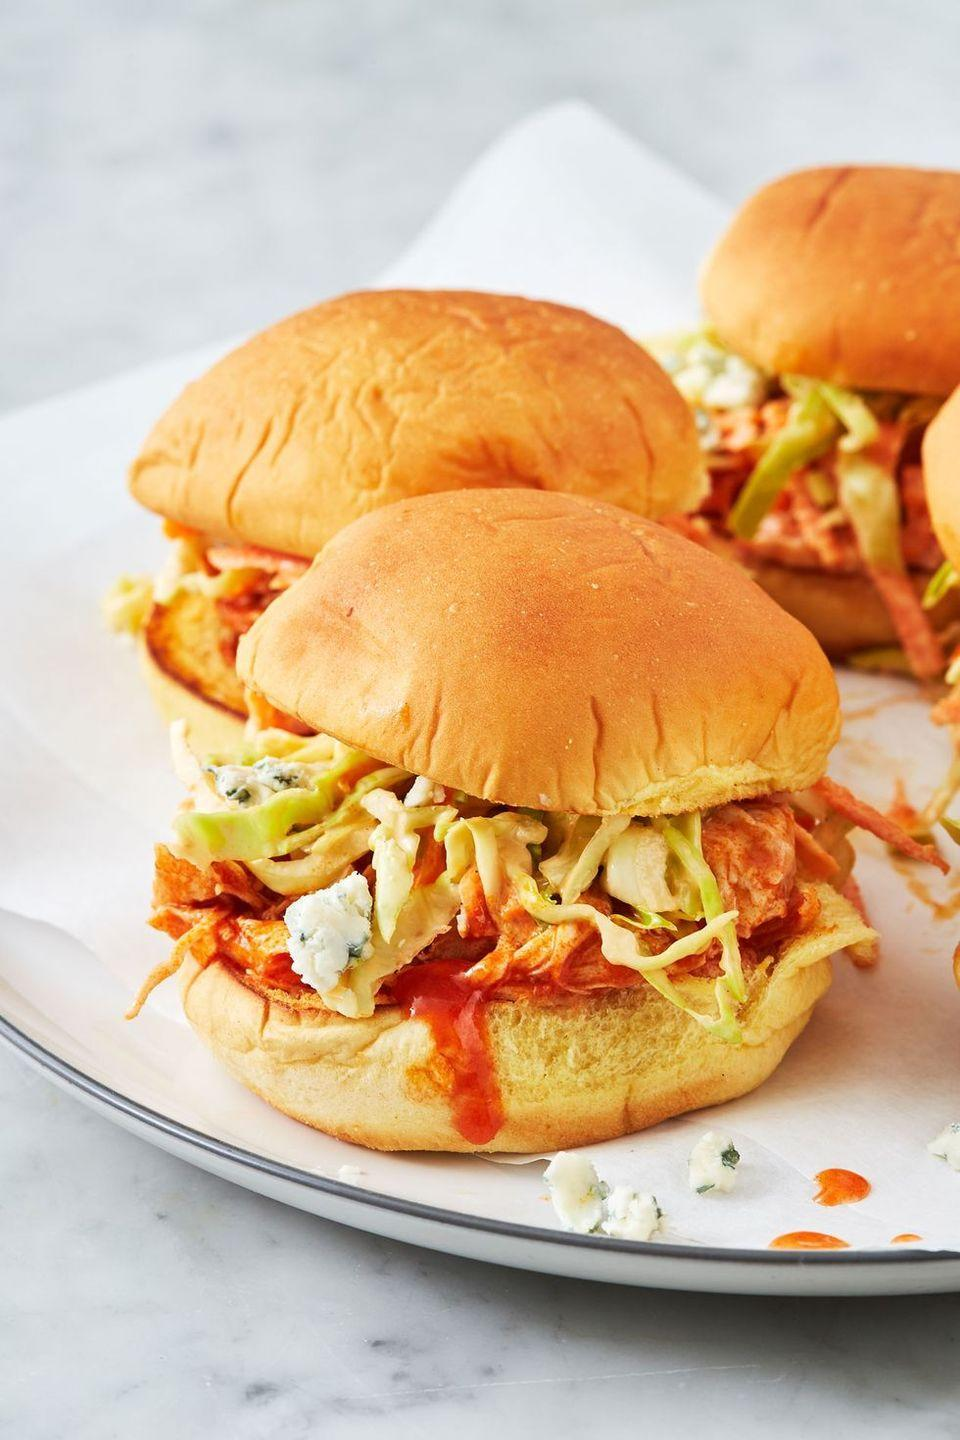 """<p>These sliders are the ultimate crowd pleaser. Served on soft, toasted rolls, the juicy pulled chicken is tossed in hot sauce and topped with fresh crunchy ranch coleslaw and creamy chunks of blue cheese. </p><p>Get the <a href=""""https://www.delish.com/uk/cooking/recipes/a31389657/instant-pot-buffalo-chicken-recipe/"""" rel=""""nofollow noopener"""" target=""""_blank"""" data-ylk=""""slk:Instant Pot Buffalo Chicken Sliders"""" class=""""link rapid-noclick-resp"""">Instant Pot Buffalo Chicken Sliders</a> recipe.</p>"""